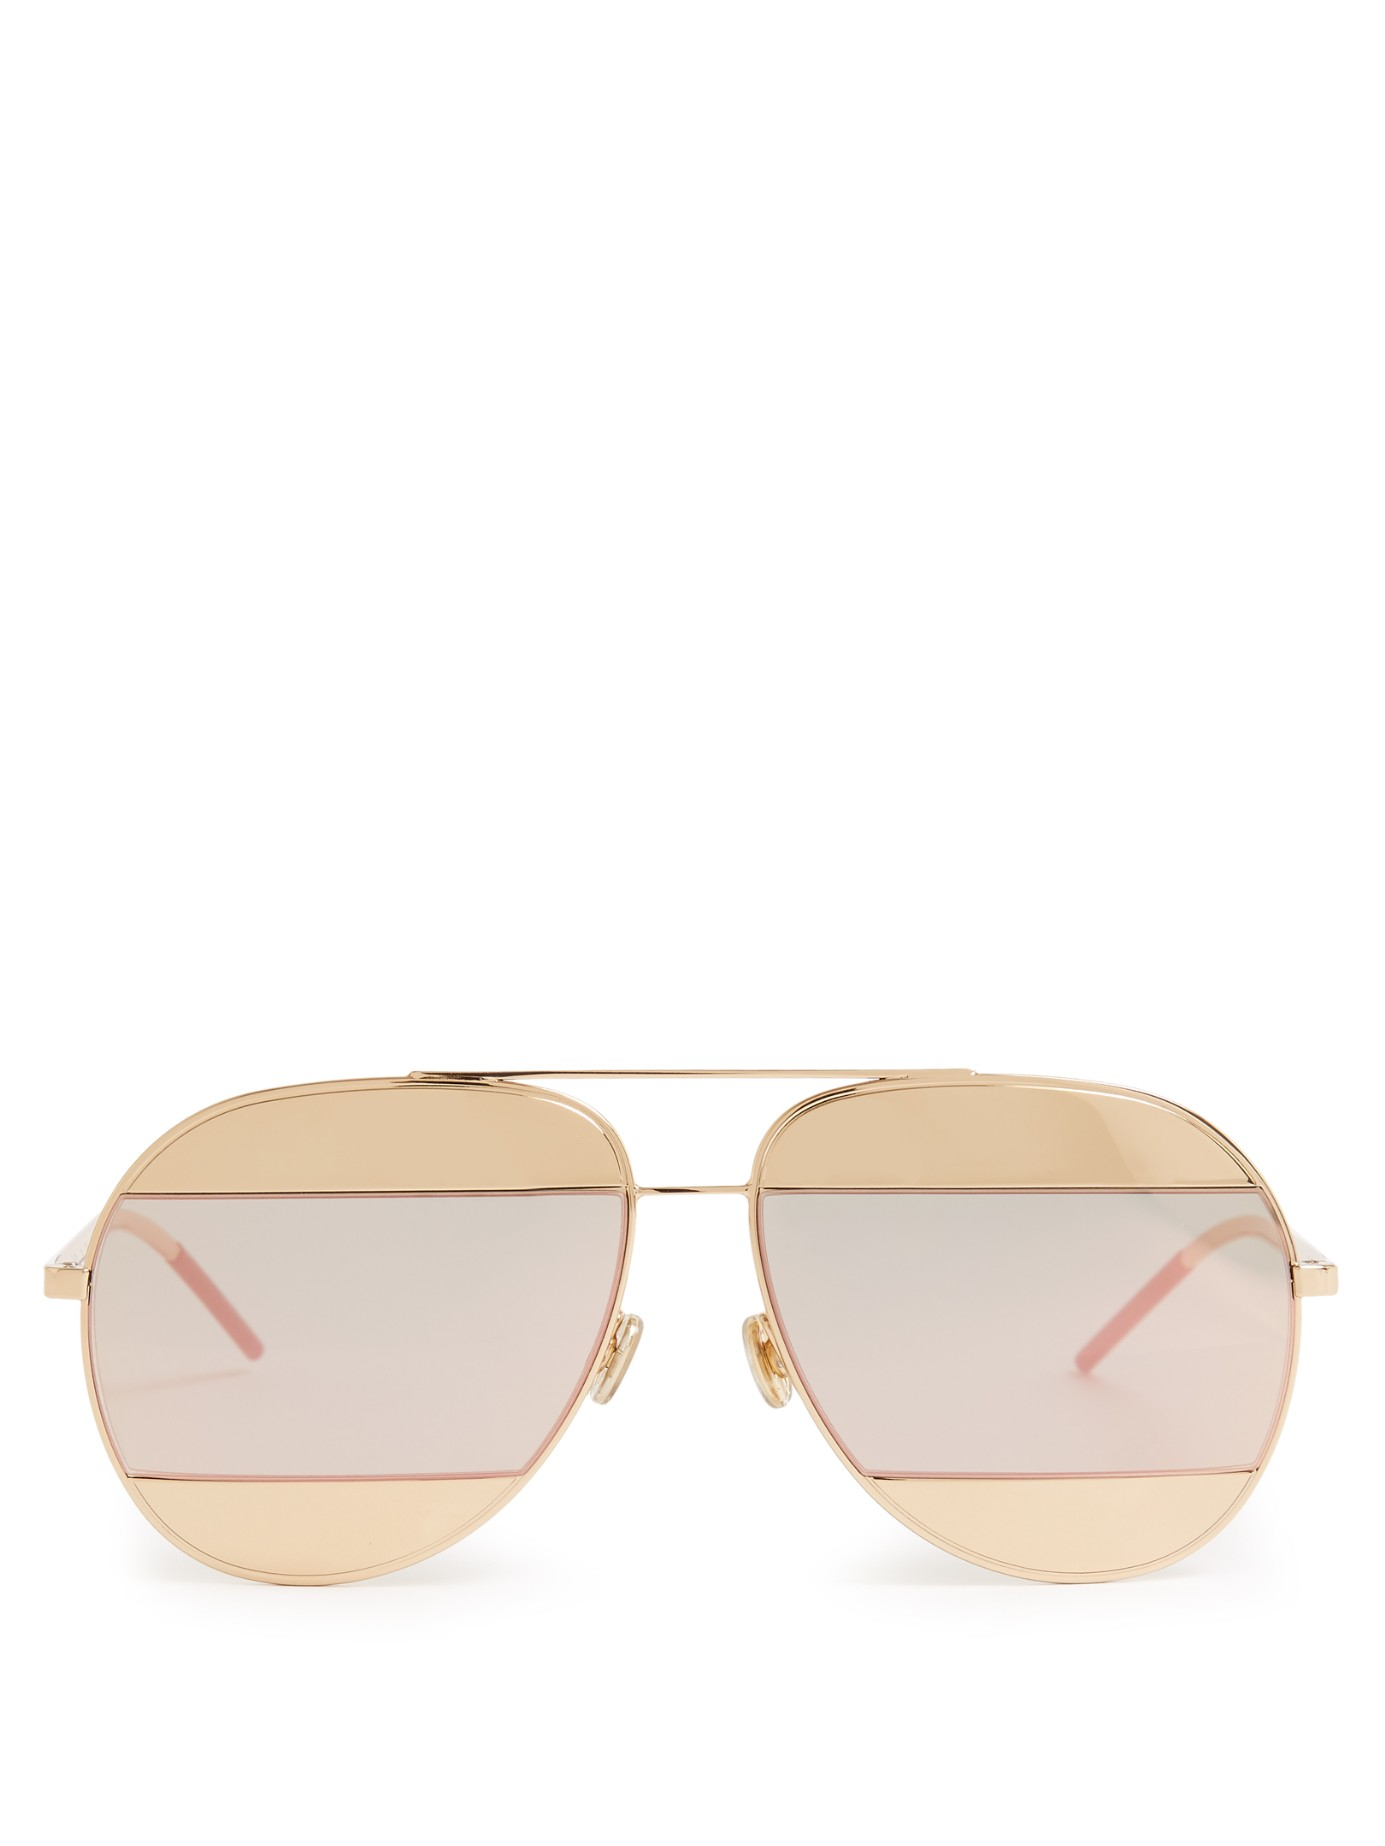 f18d811aca96 Dior Gold Aviator Sunglasses. Dior   39 chicago  39  Metal Aviator  Sunglasses